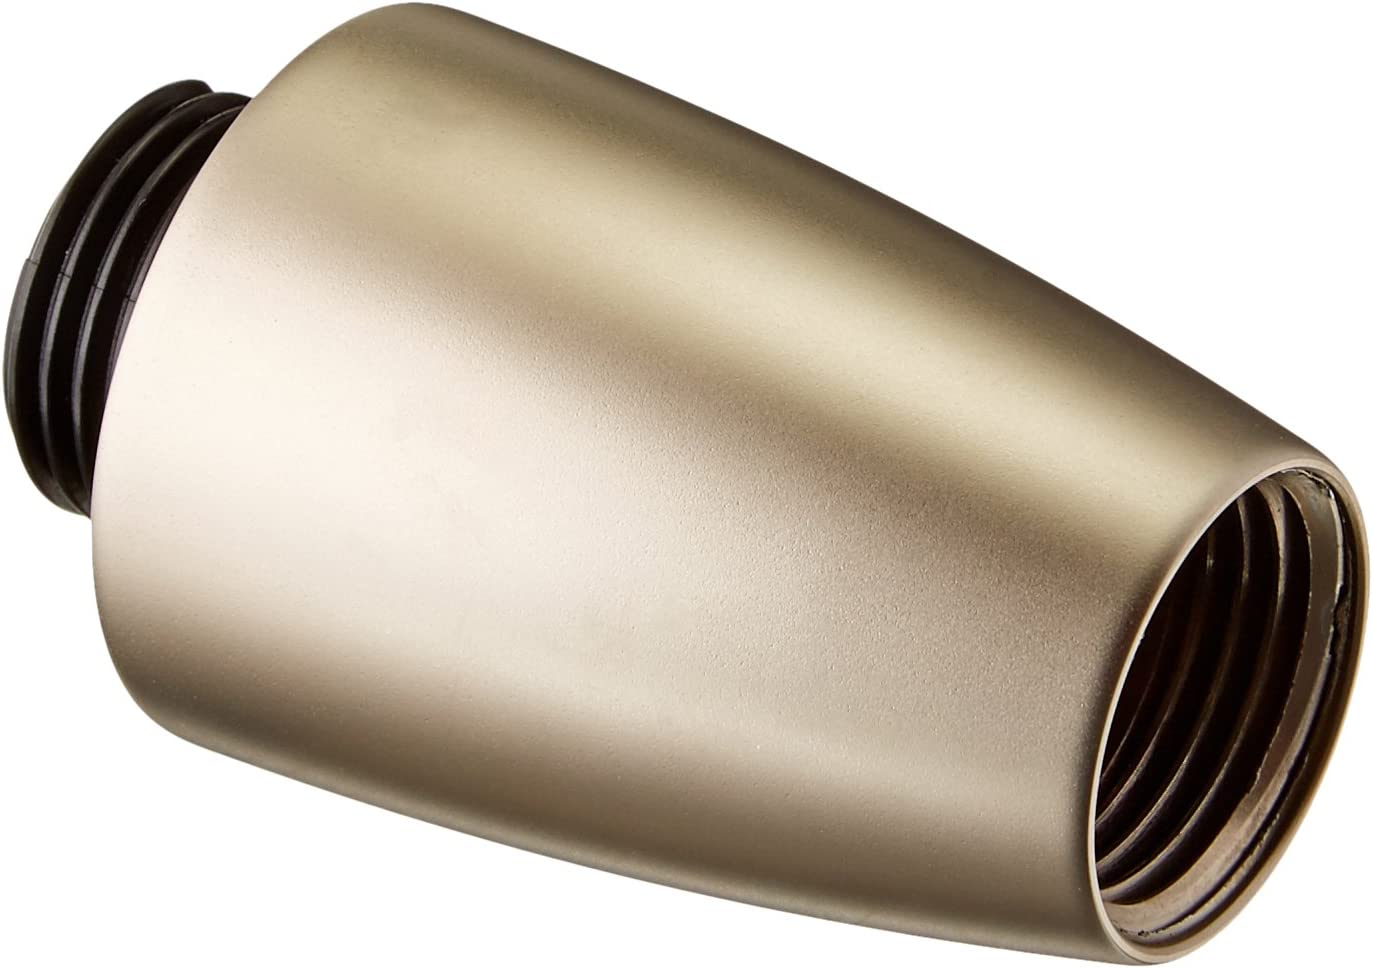 Moen A714ORB Collection Hand Shower Vacuum Breaker Oil Rubbed Bronze